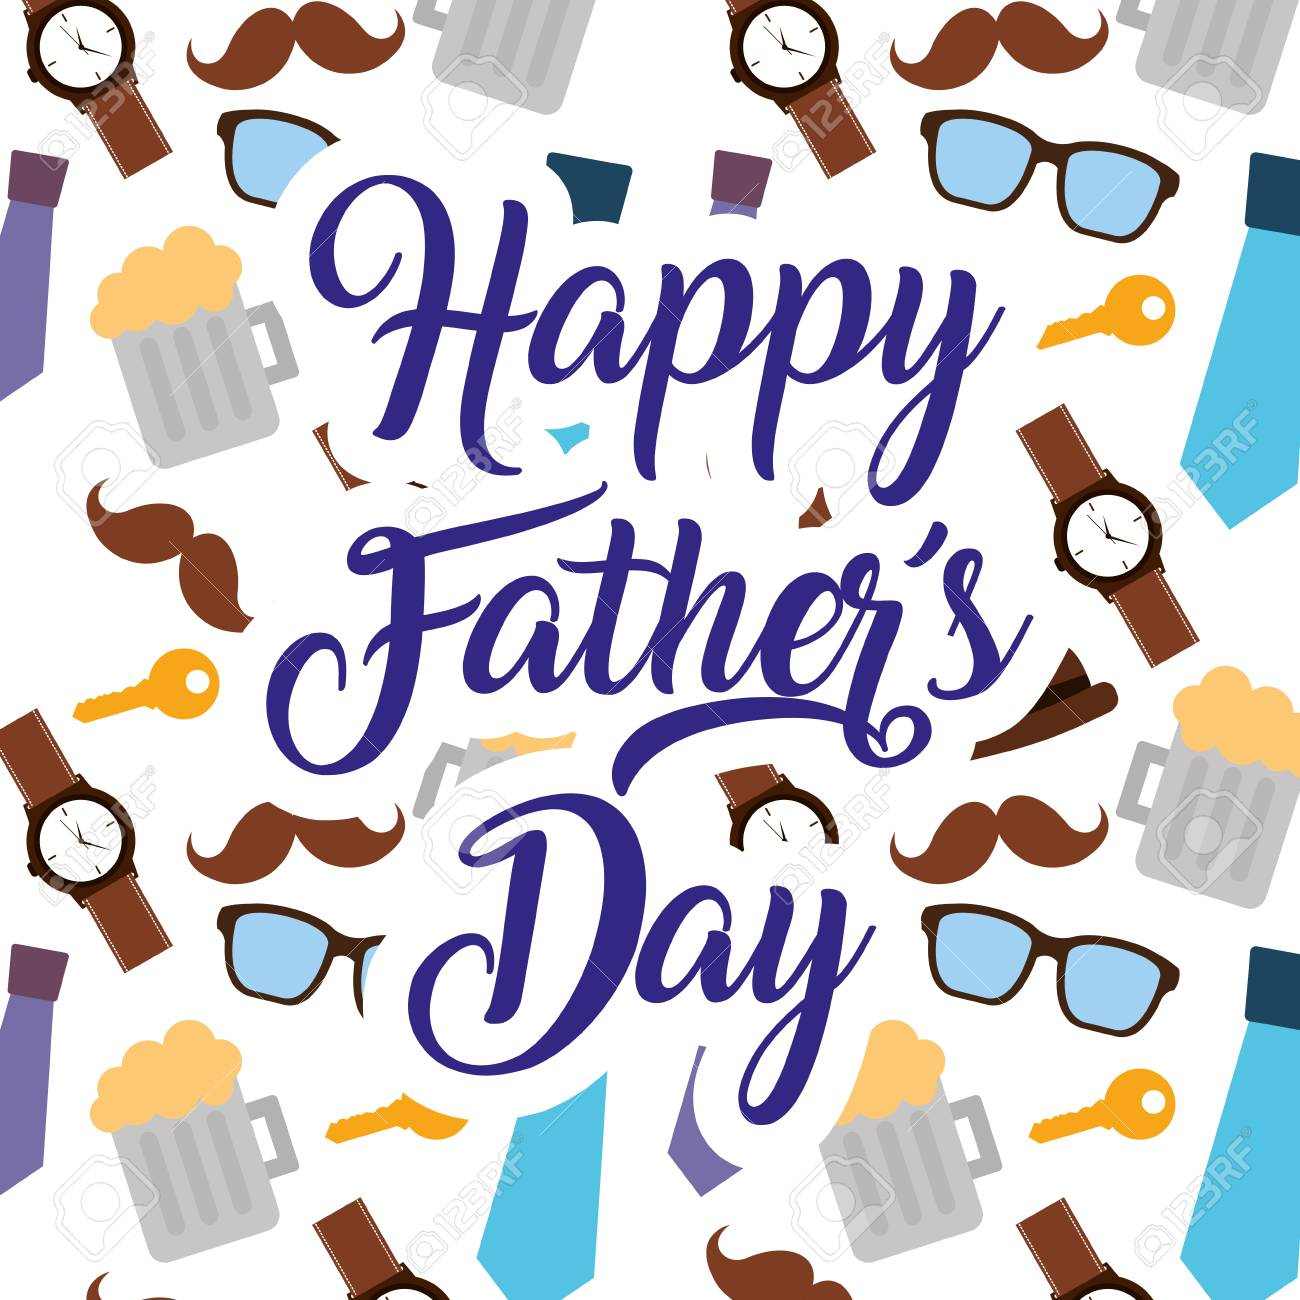 Happy Fathers Day Pattern Decoration Mustache Glasses Bow Tie